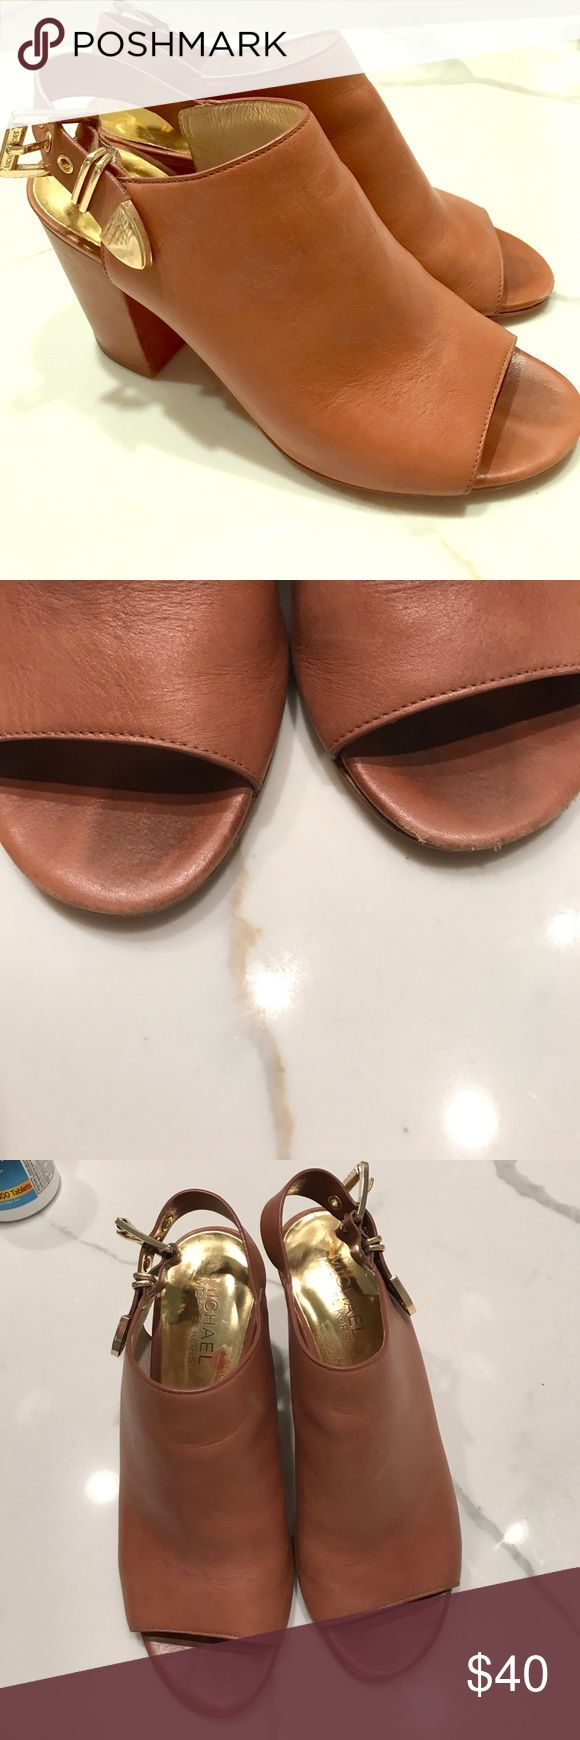 Michael Kors Sandals Beautiful Michael Kors shoes. Have been worn but have tons of life left. Have some scuff marks- as pictured (price reflected). These shoes look great with dresses, shorts and skinny jeans. Beautiful color. 🛑NO TRADES🛑 MICHAEL Michael Kors Shoes Heels